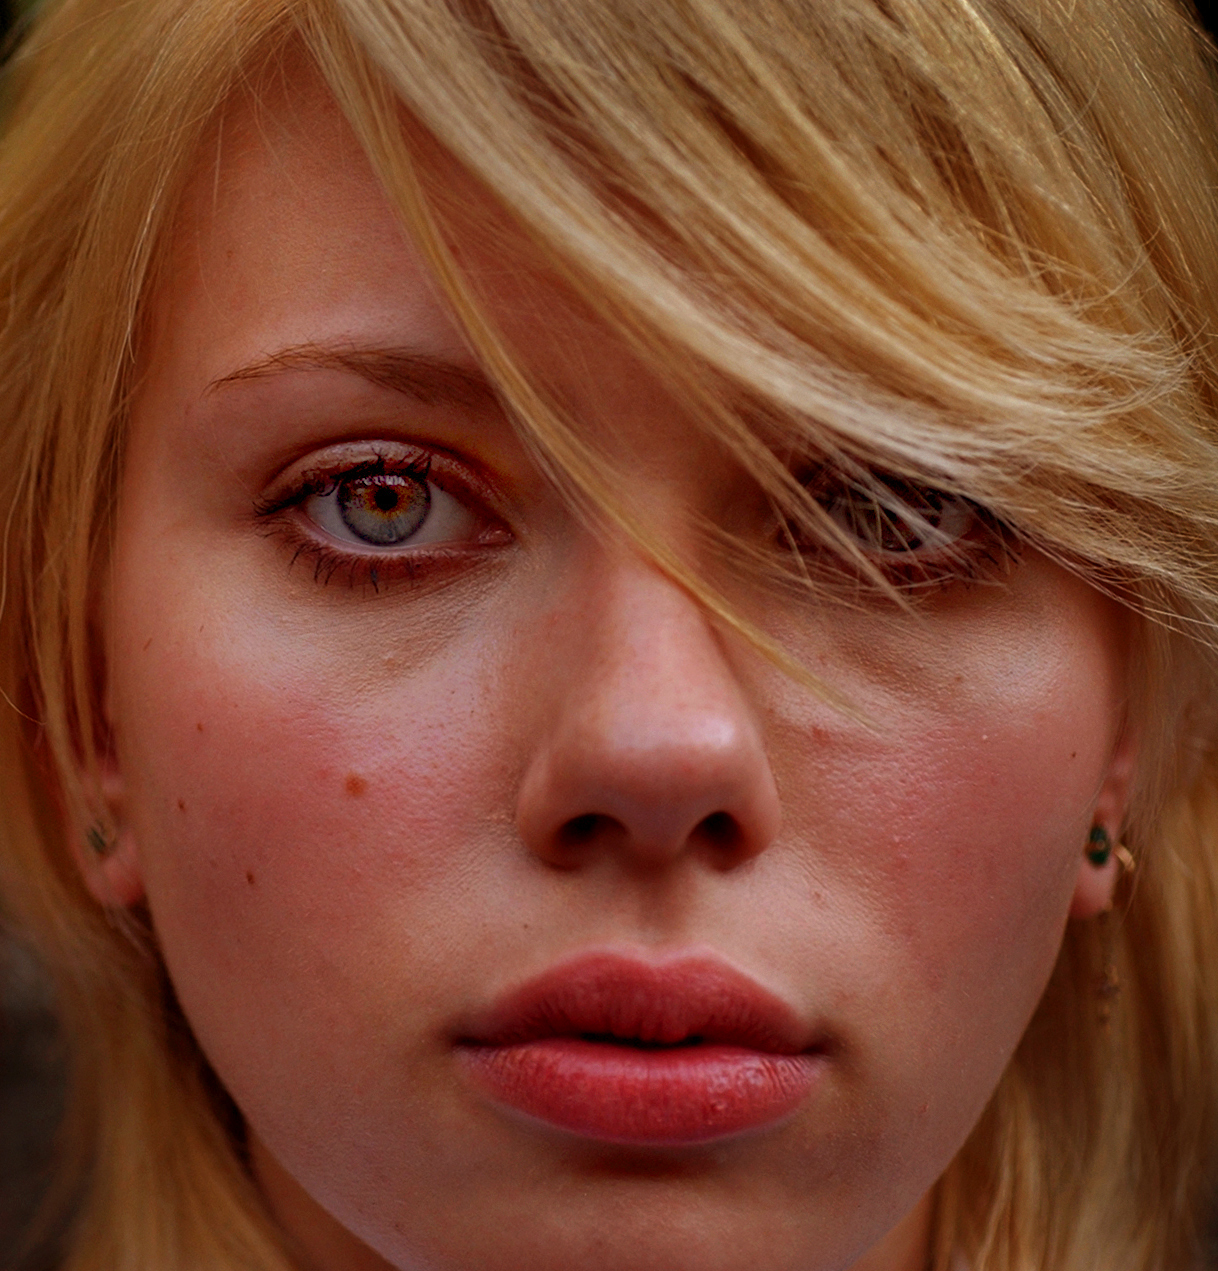 Actress Scarlett Johansson, Saturday afternoon in the Hollywood Hills. She has become the 'it' actress of the year with her roles in the movie, LOST IN TRANSLATION and the upcoming, GIRL WITH A PEARL EARRING.